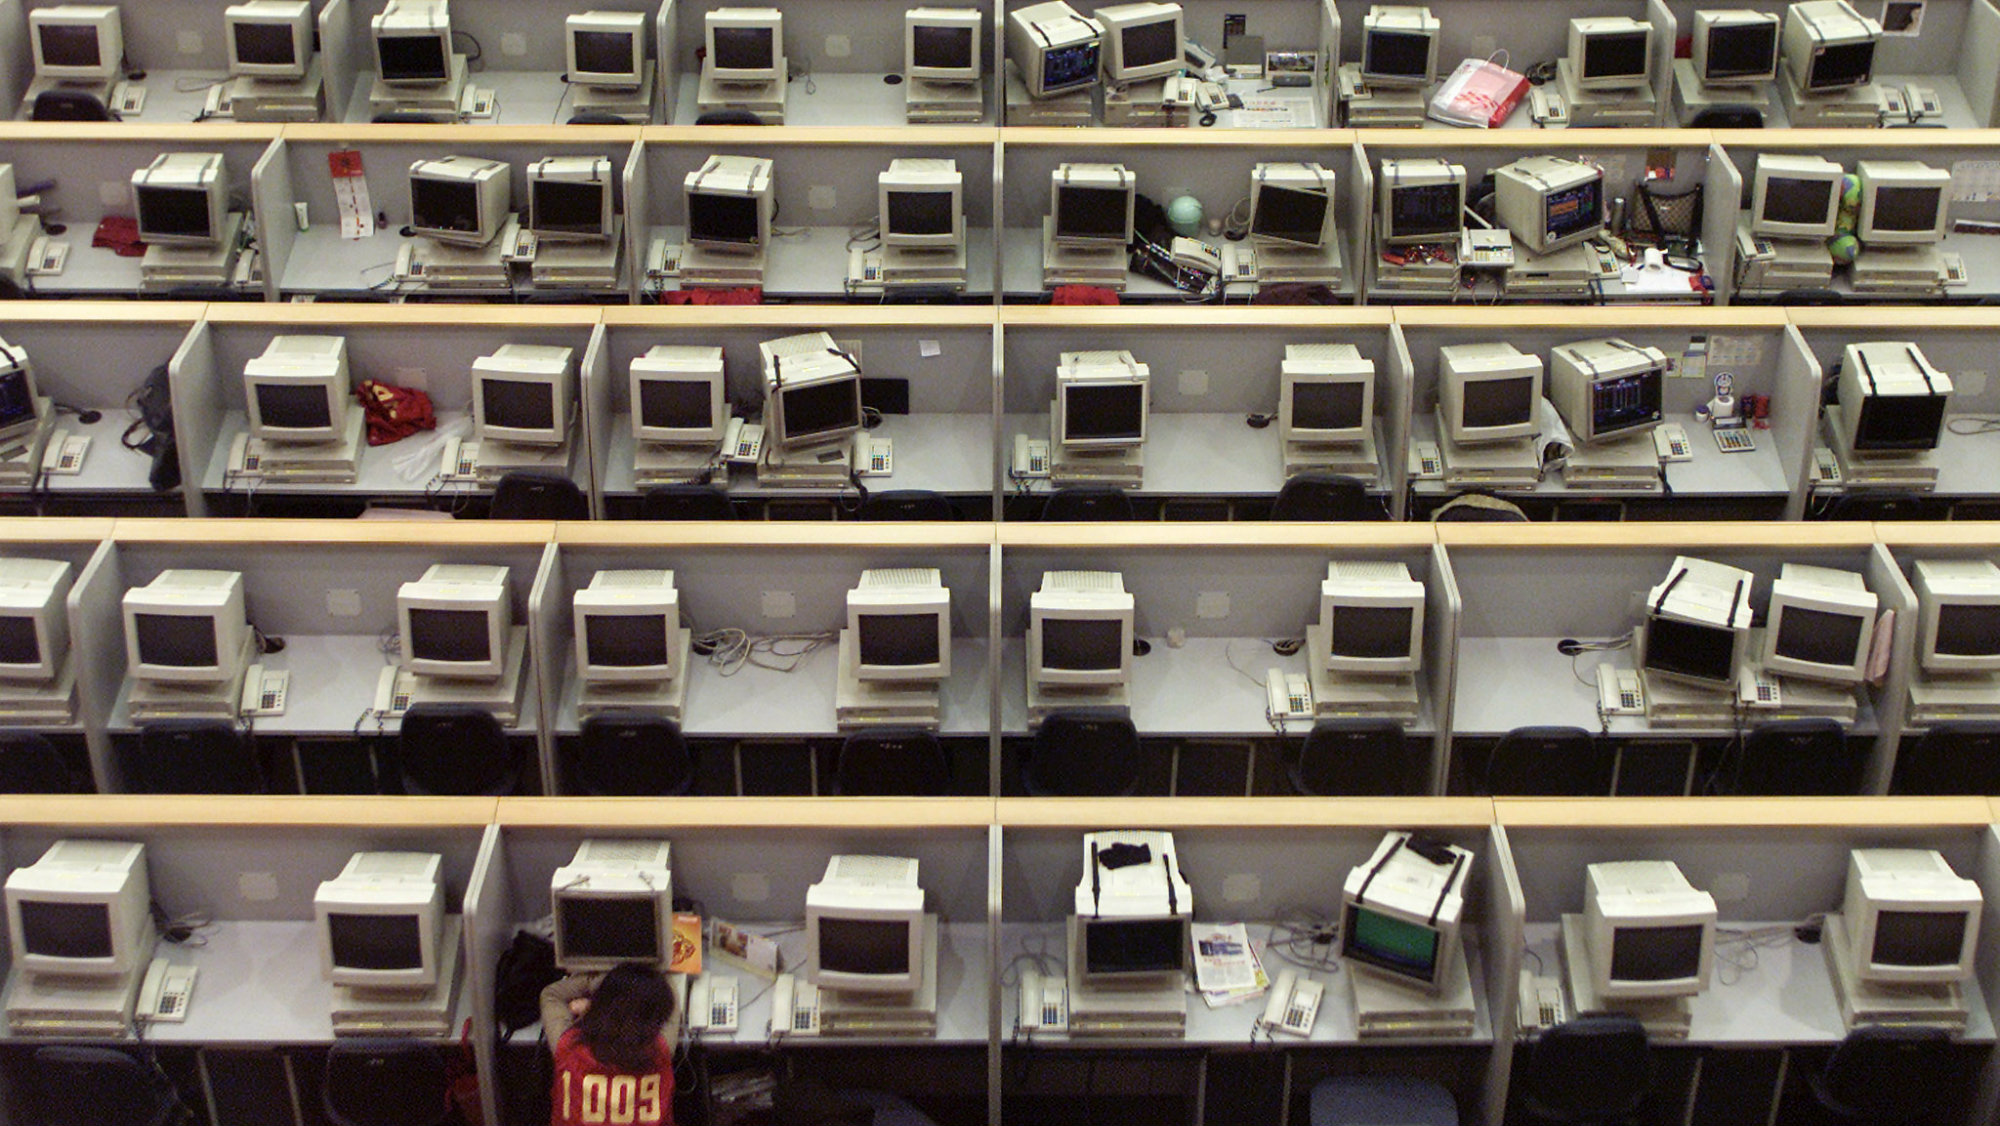 One person naps at a bank of old computers